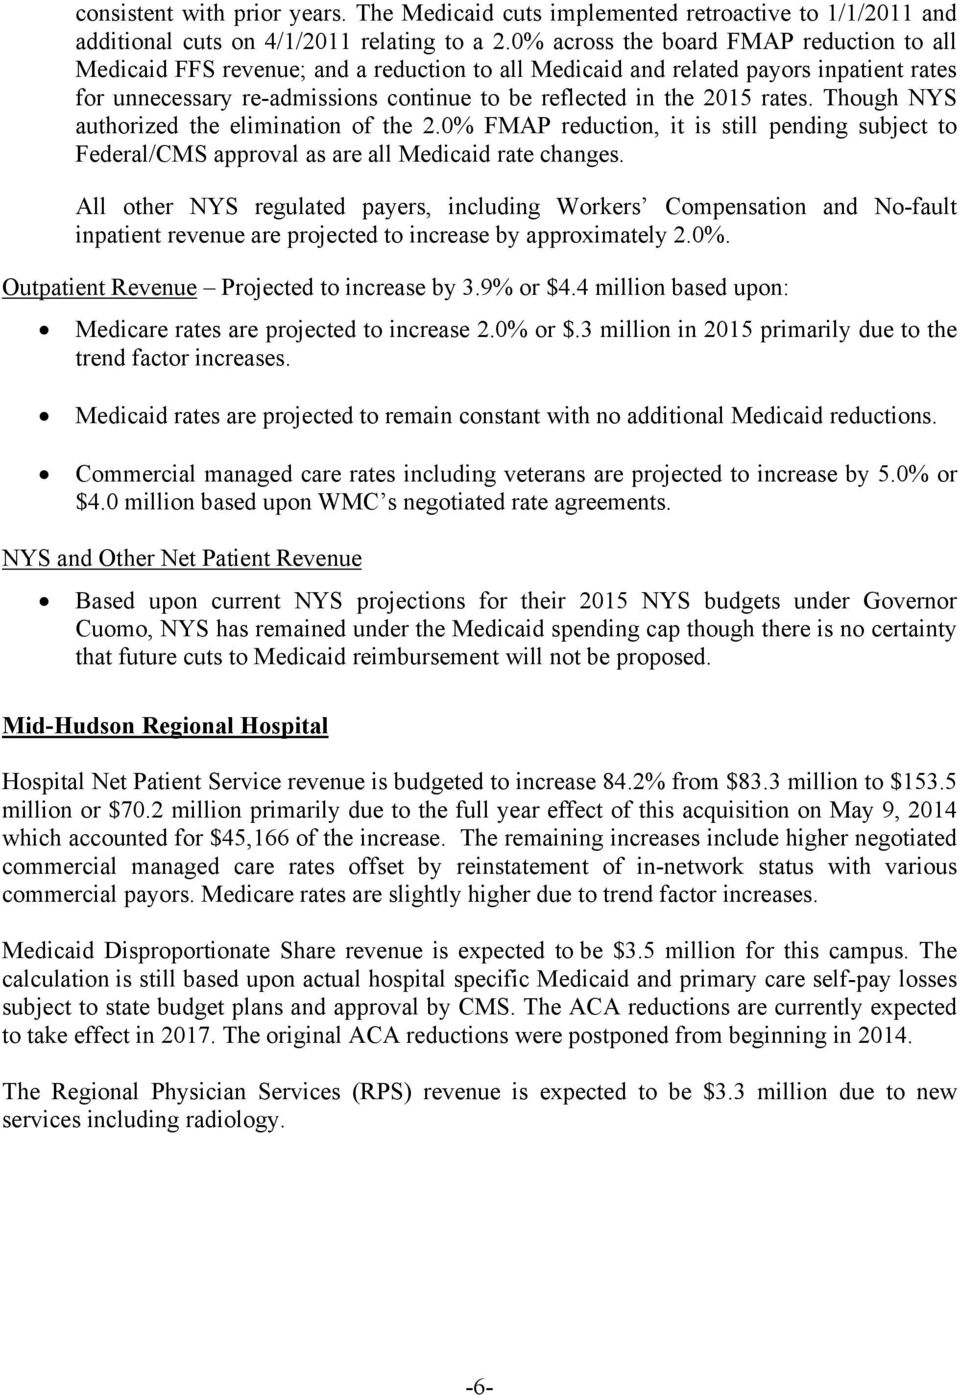 rates. Though NYS authorized the elimination of the 2.0% FMAP reduction, it is still pending subject to Federal/CMS approval as are all Medicaid rate changes.